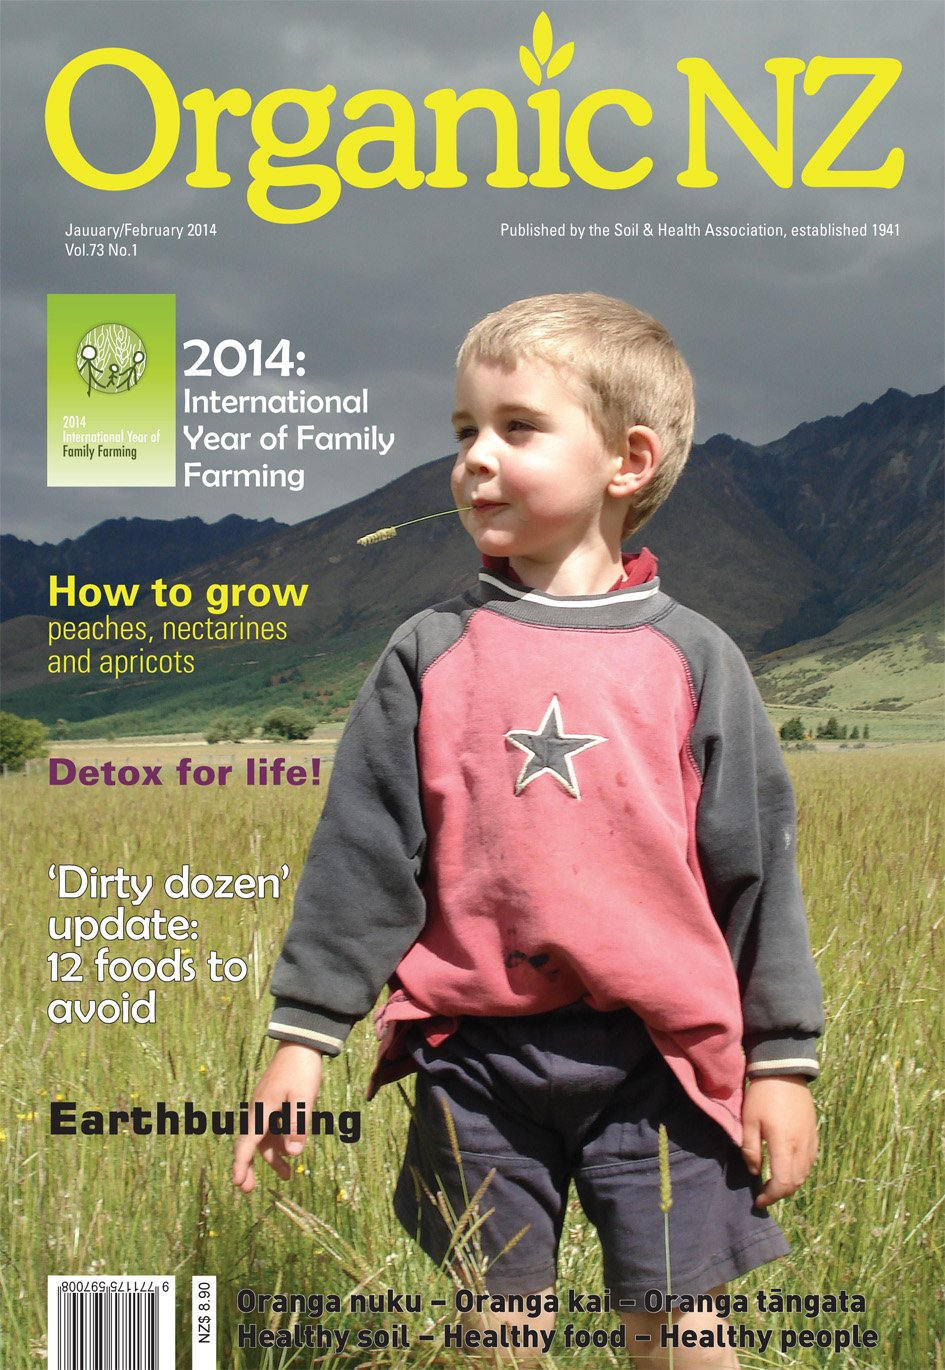 Organic NZ Jan/Feb 2014 cover